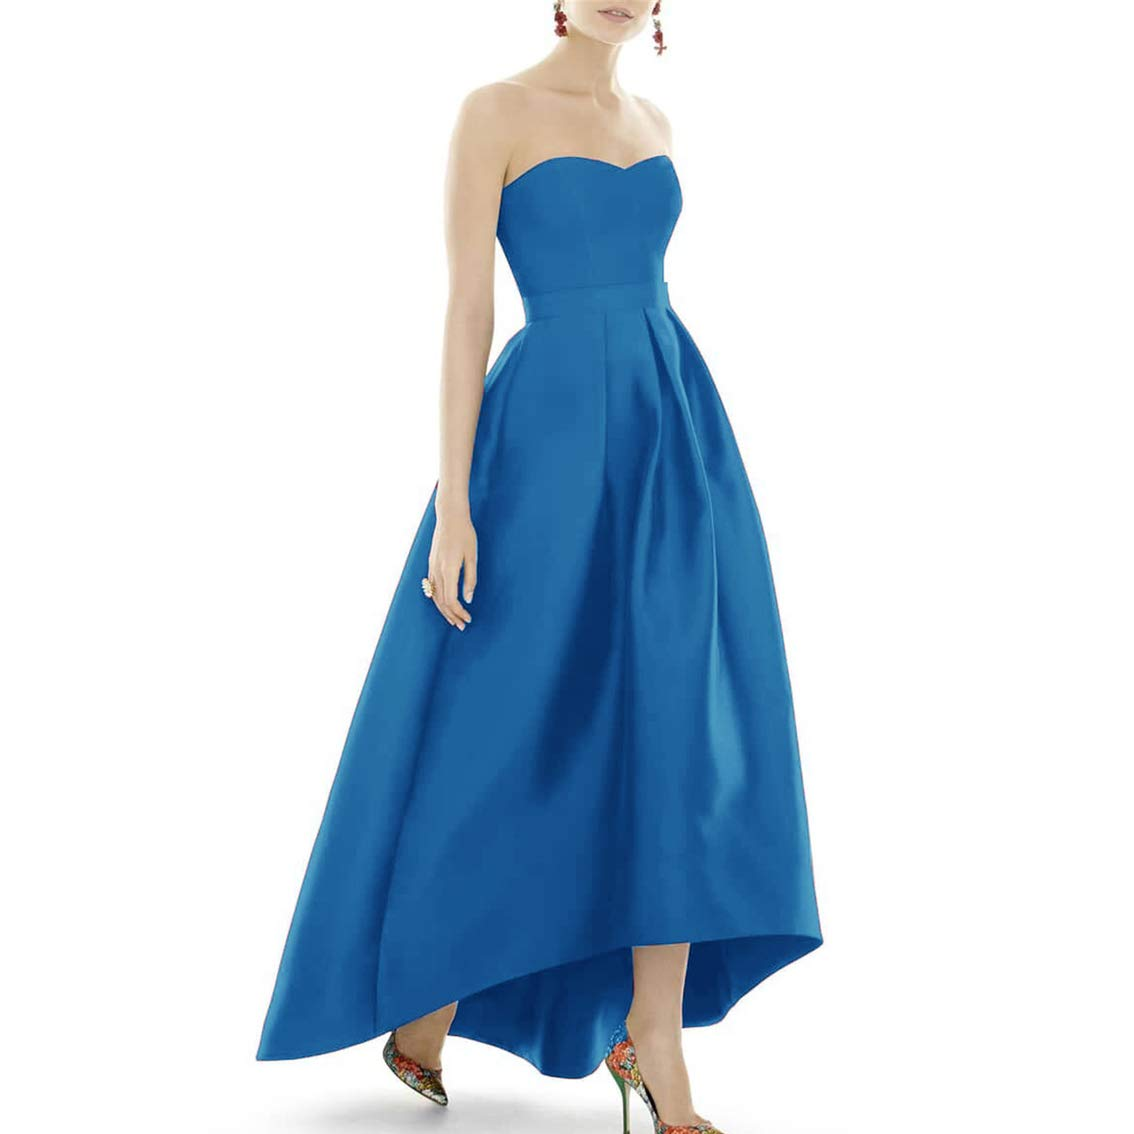 bluee XSWPL Women's Strapless High Low Bridesmaid Dresses Sweetheart Satin Prom Gowns ALine